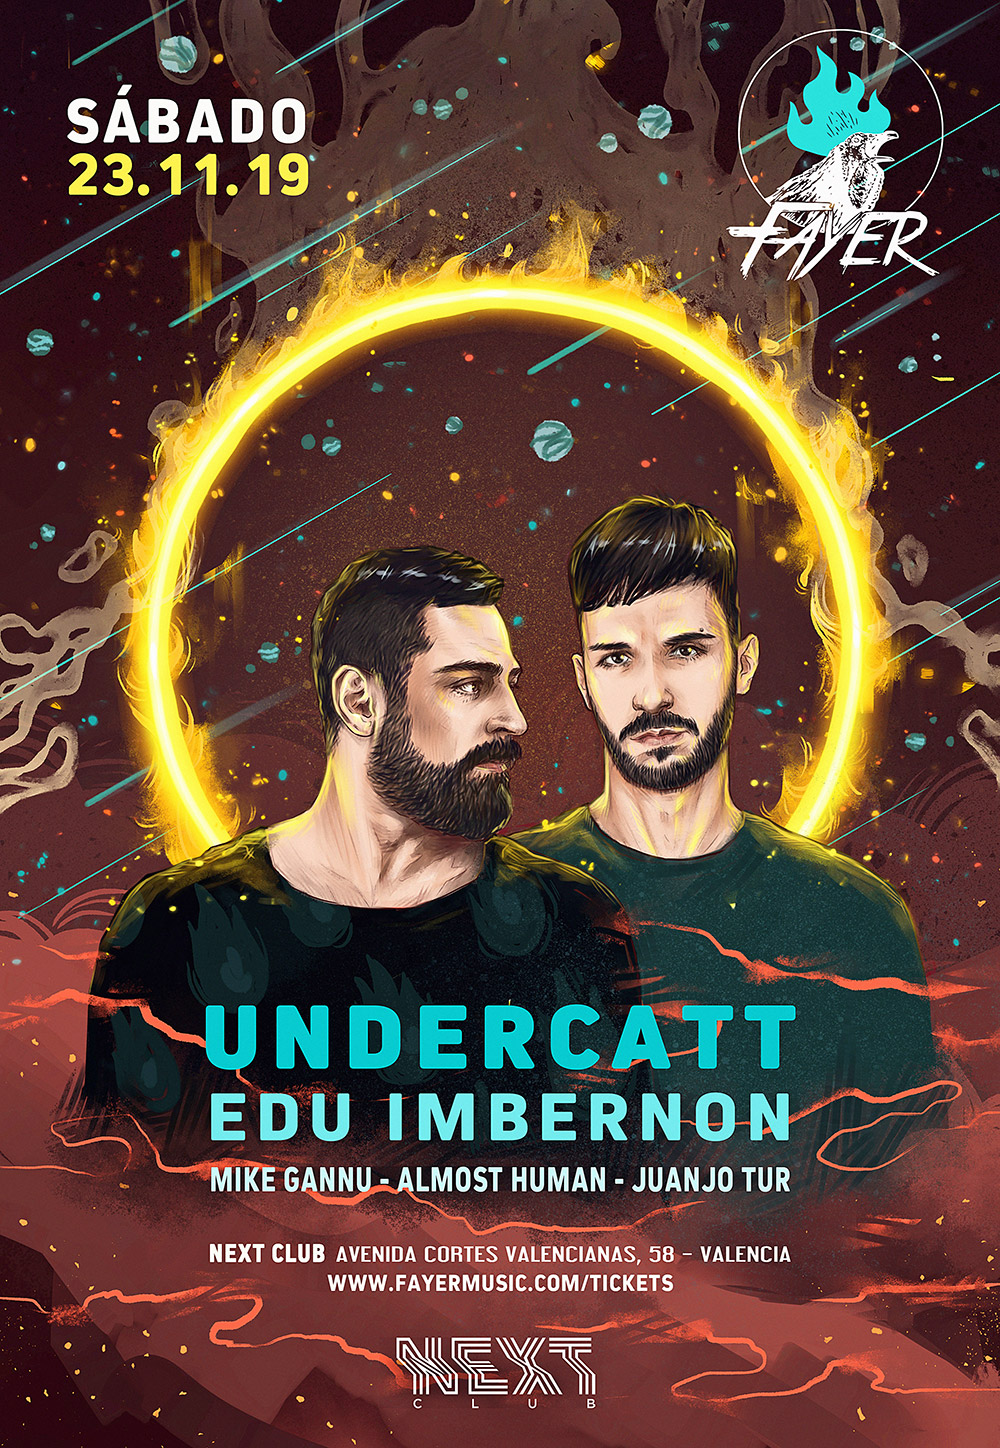 Undercatt on Fayer November 2019